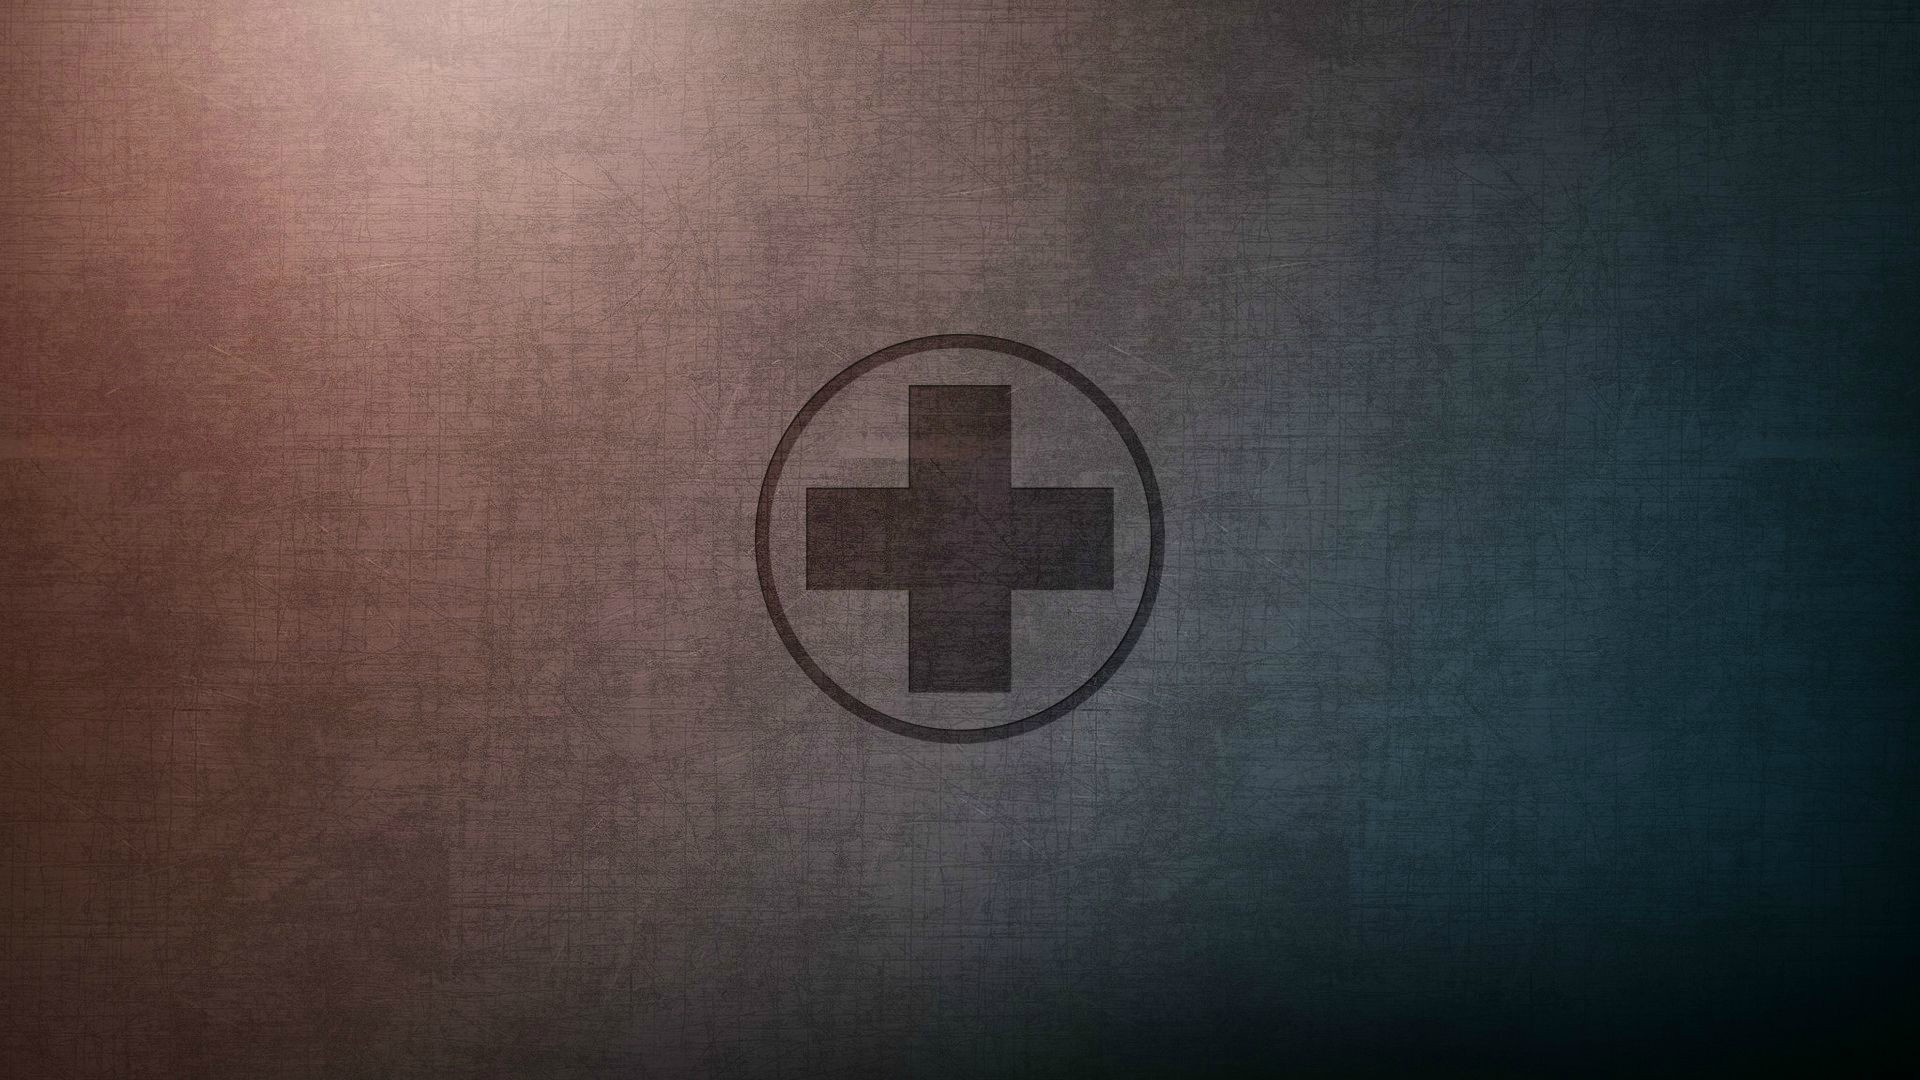 stunning team fortress 2 logo picture stunning team fortress 2 logo picture